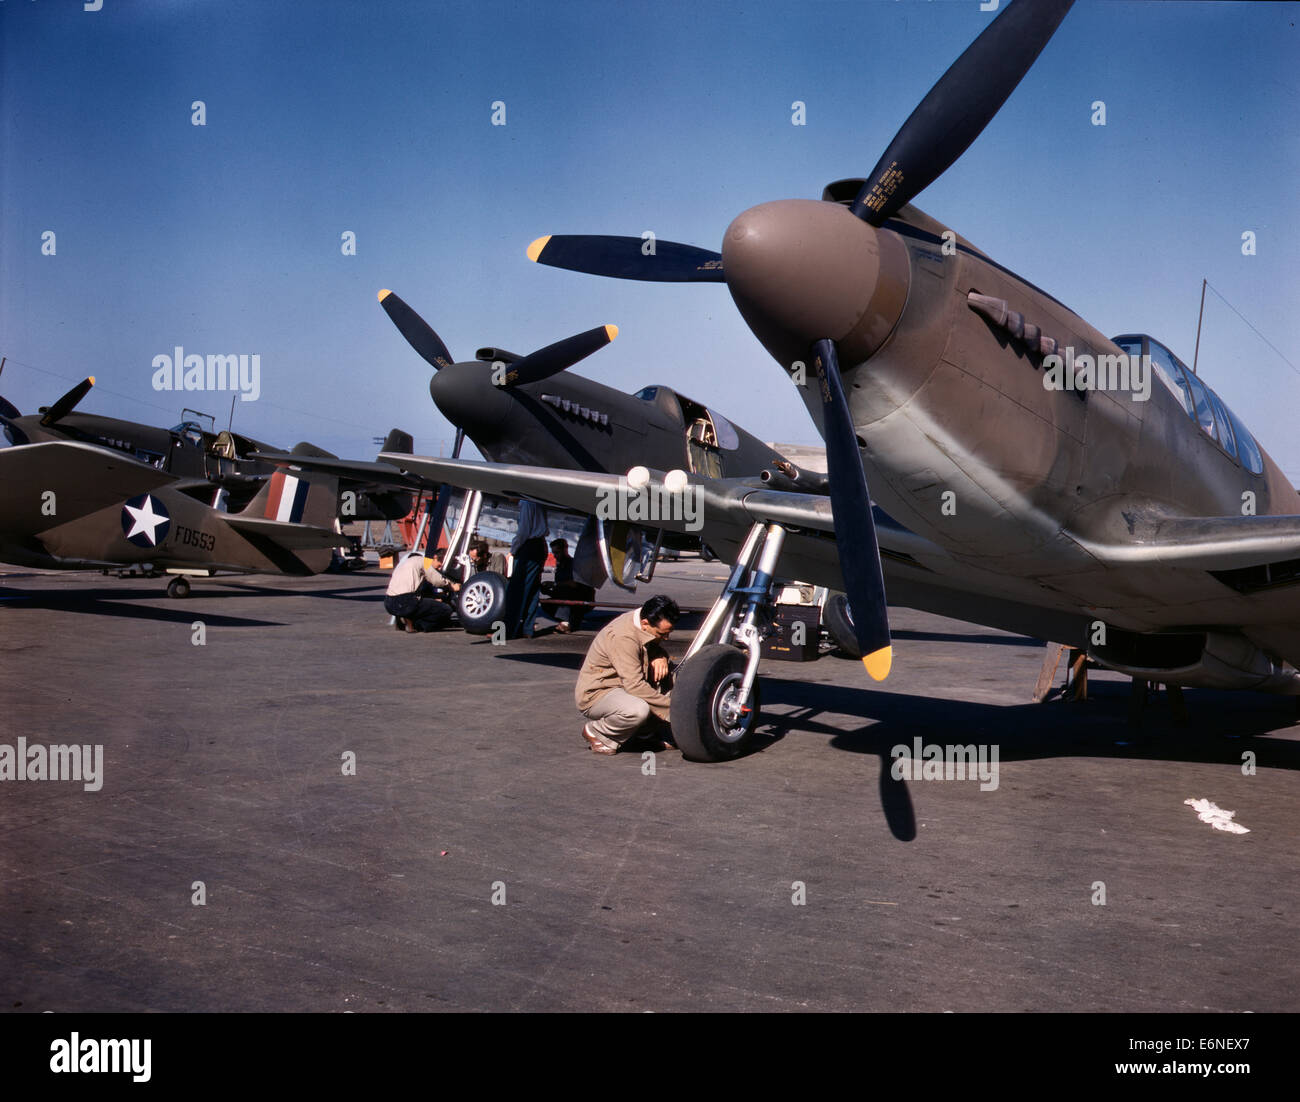 P-51 ('Mustang') fighter planes being prepared for test flight at the field of North American Aviation, - Stock Image